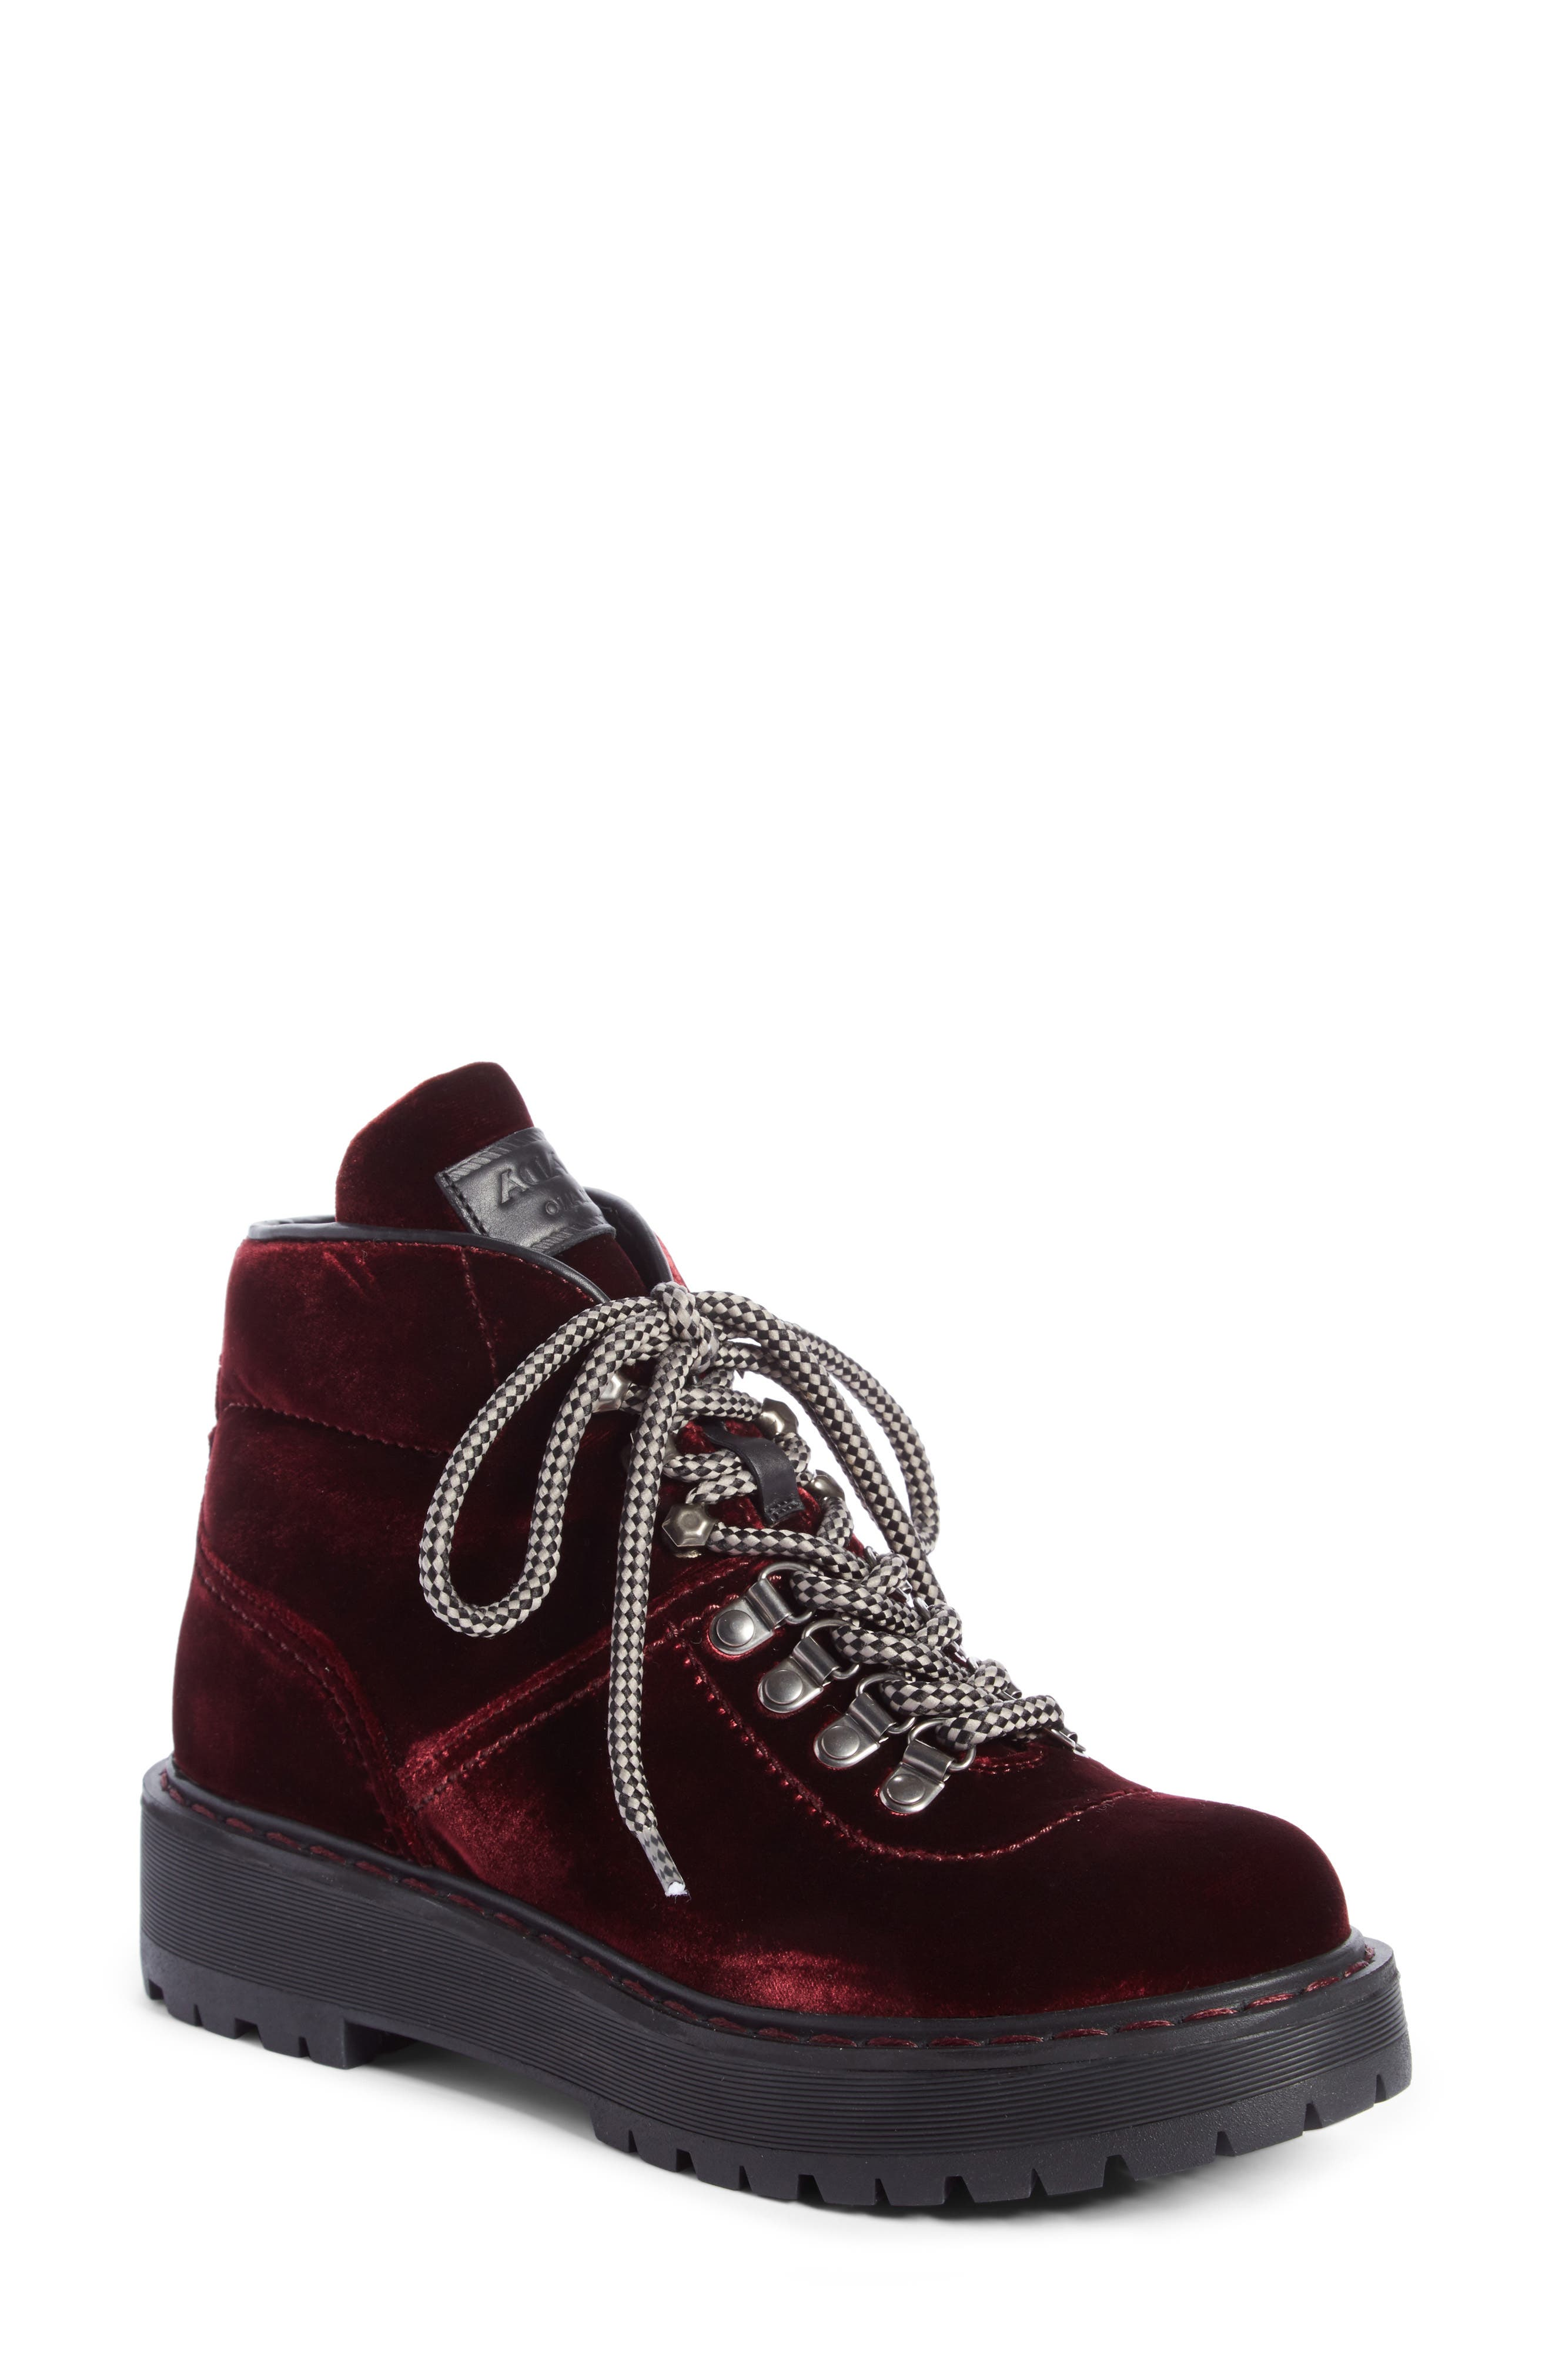 Prada Linea Rossa Lace-Up Bootie (Women)